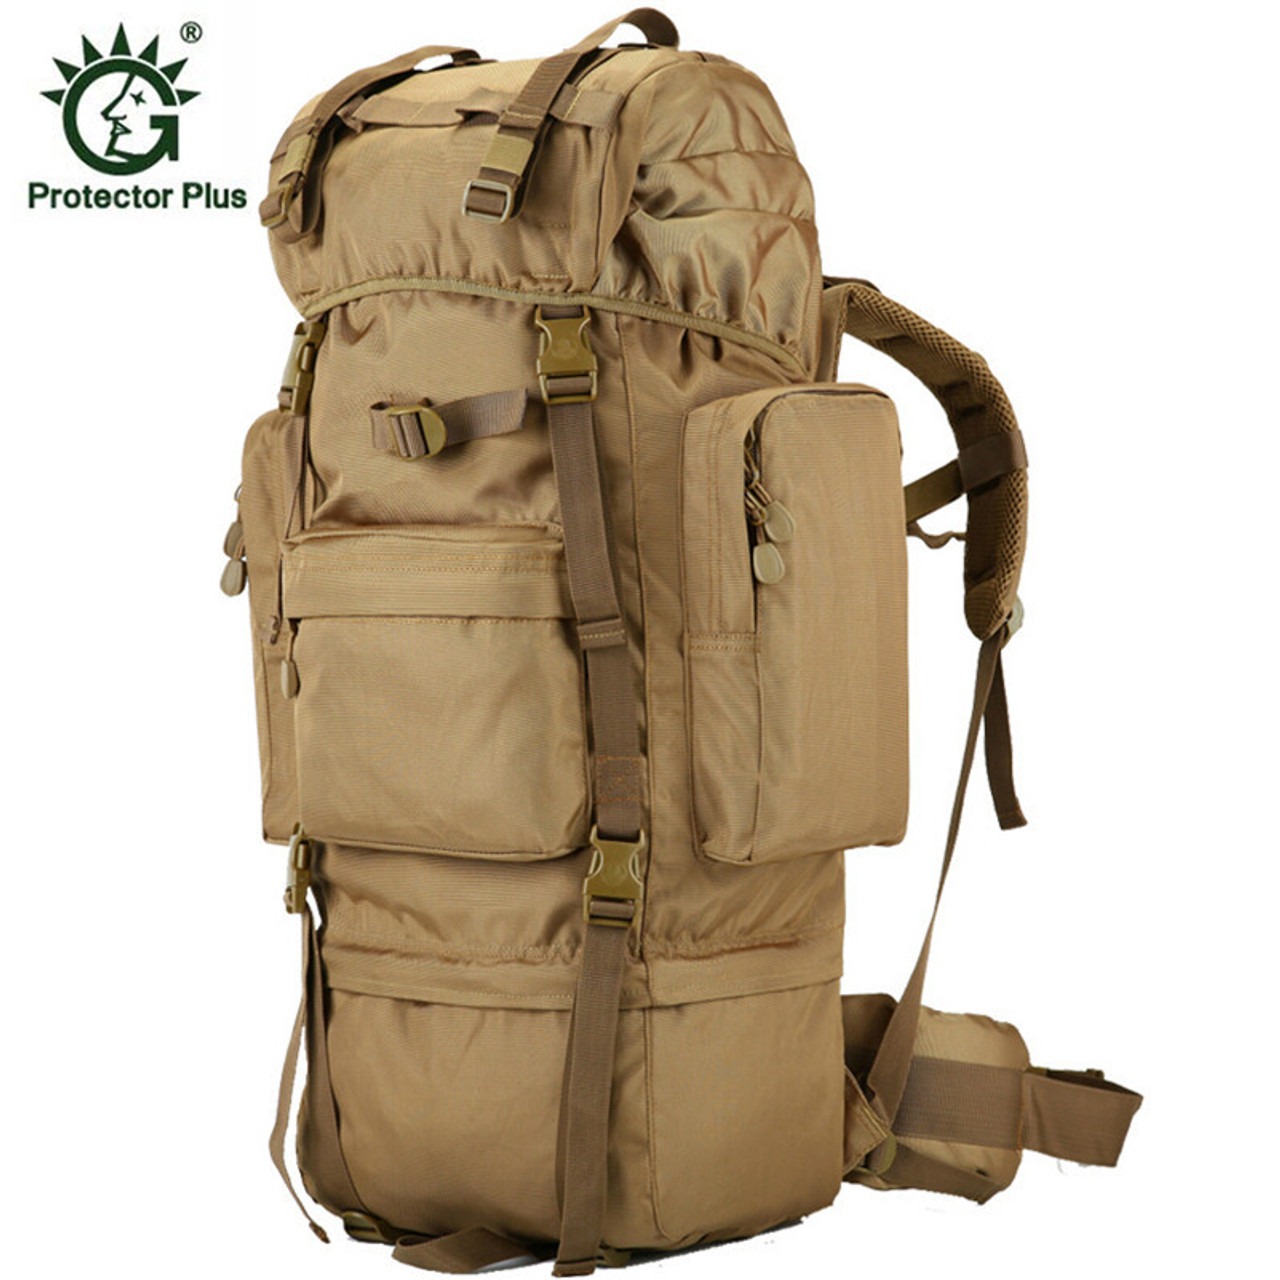 8a8fc8e5ab25 70 L Metal Bracket Backpack Outdoor Sports Bag Military Tactical Bags Hiking  Camping Waterproof Wear-resisting Nylon Bag D033 - OnshopDeals.Com